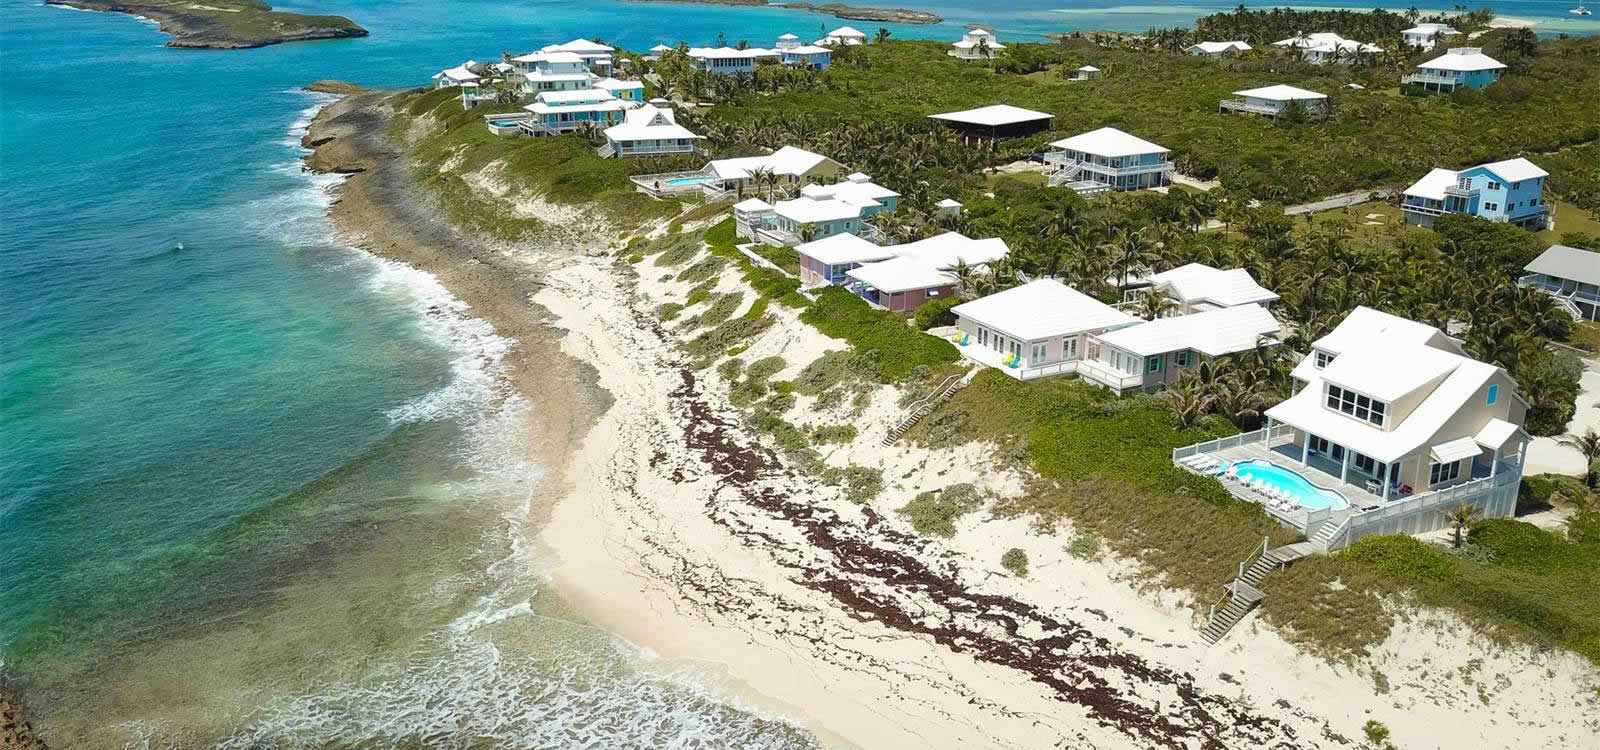 5 Bedroom Beachfront Home For Sale Elbow Cay Hope Town Abaco Bahamas 7th Heaven Properties